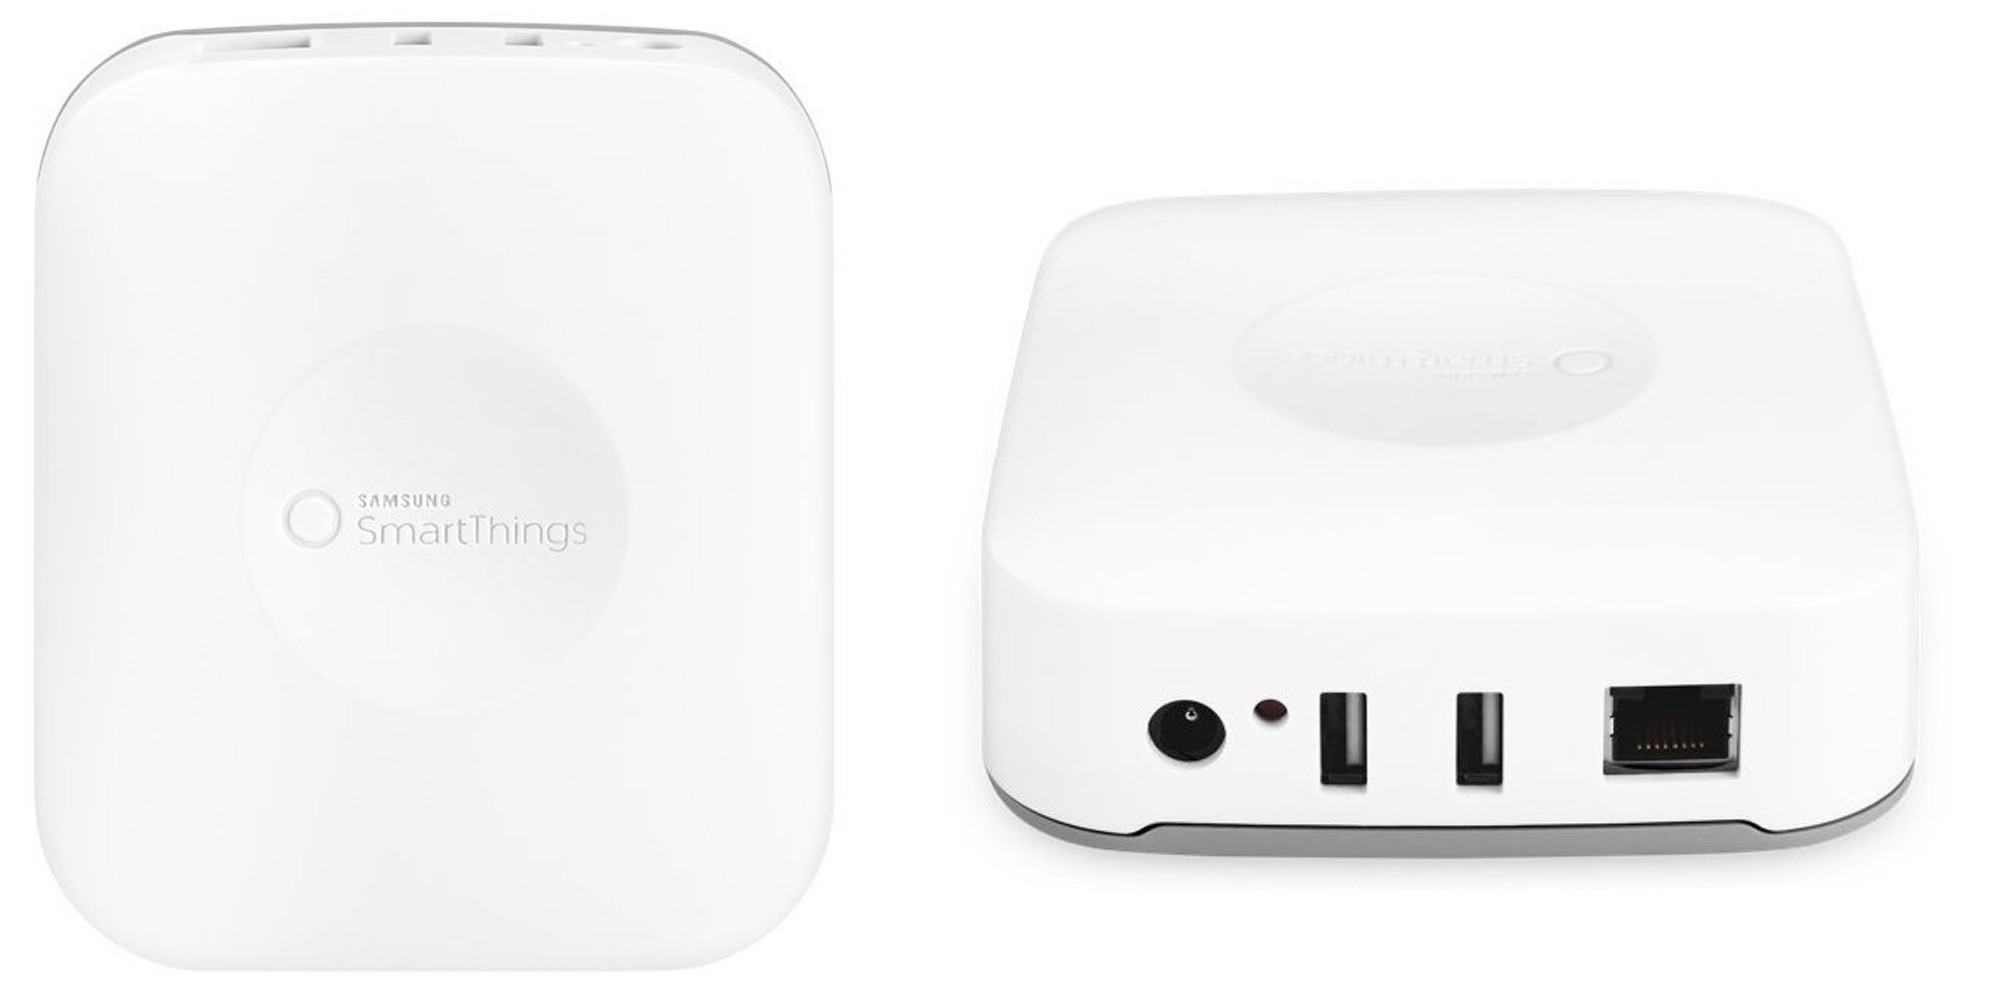 Save $40 on Samsung's SmartThings Hub, now down to $50